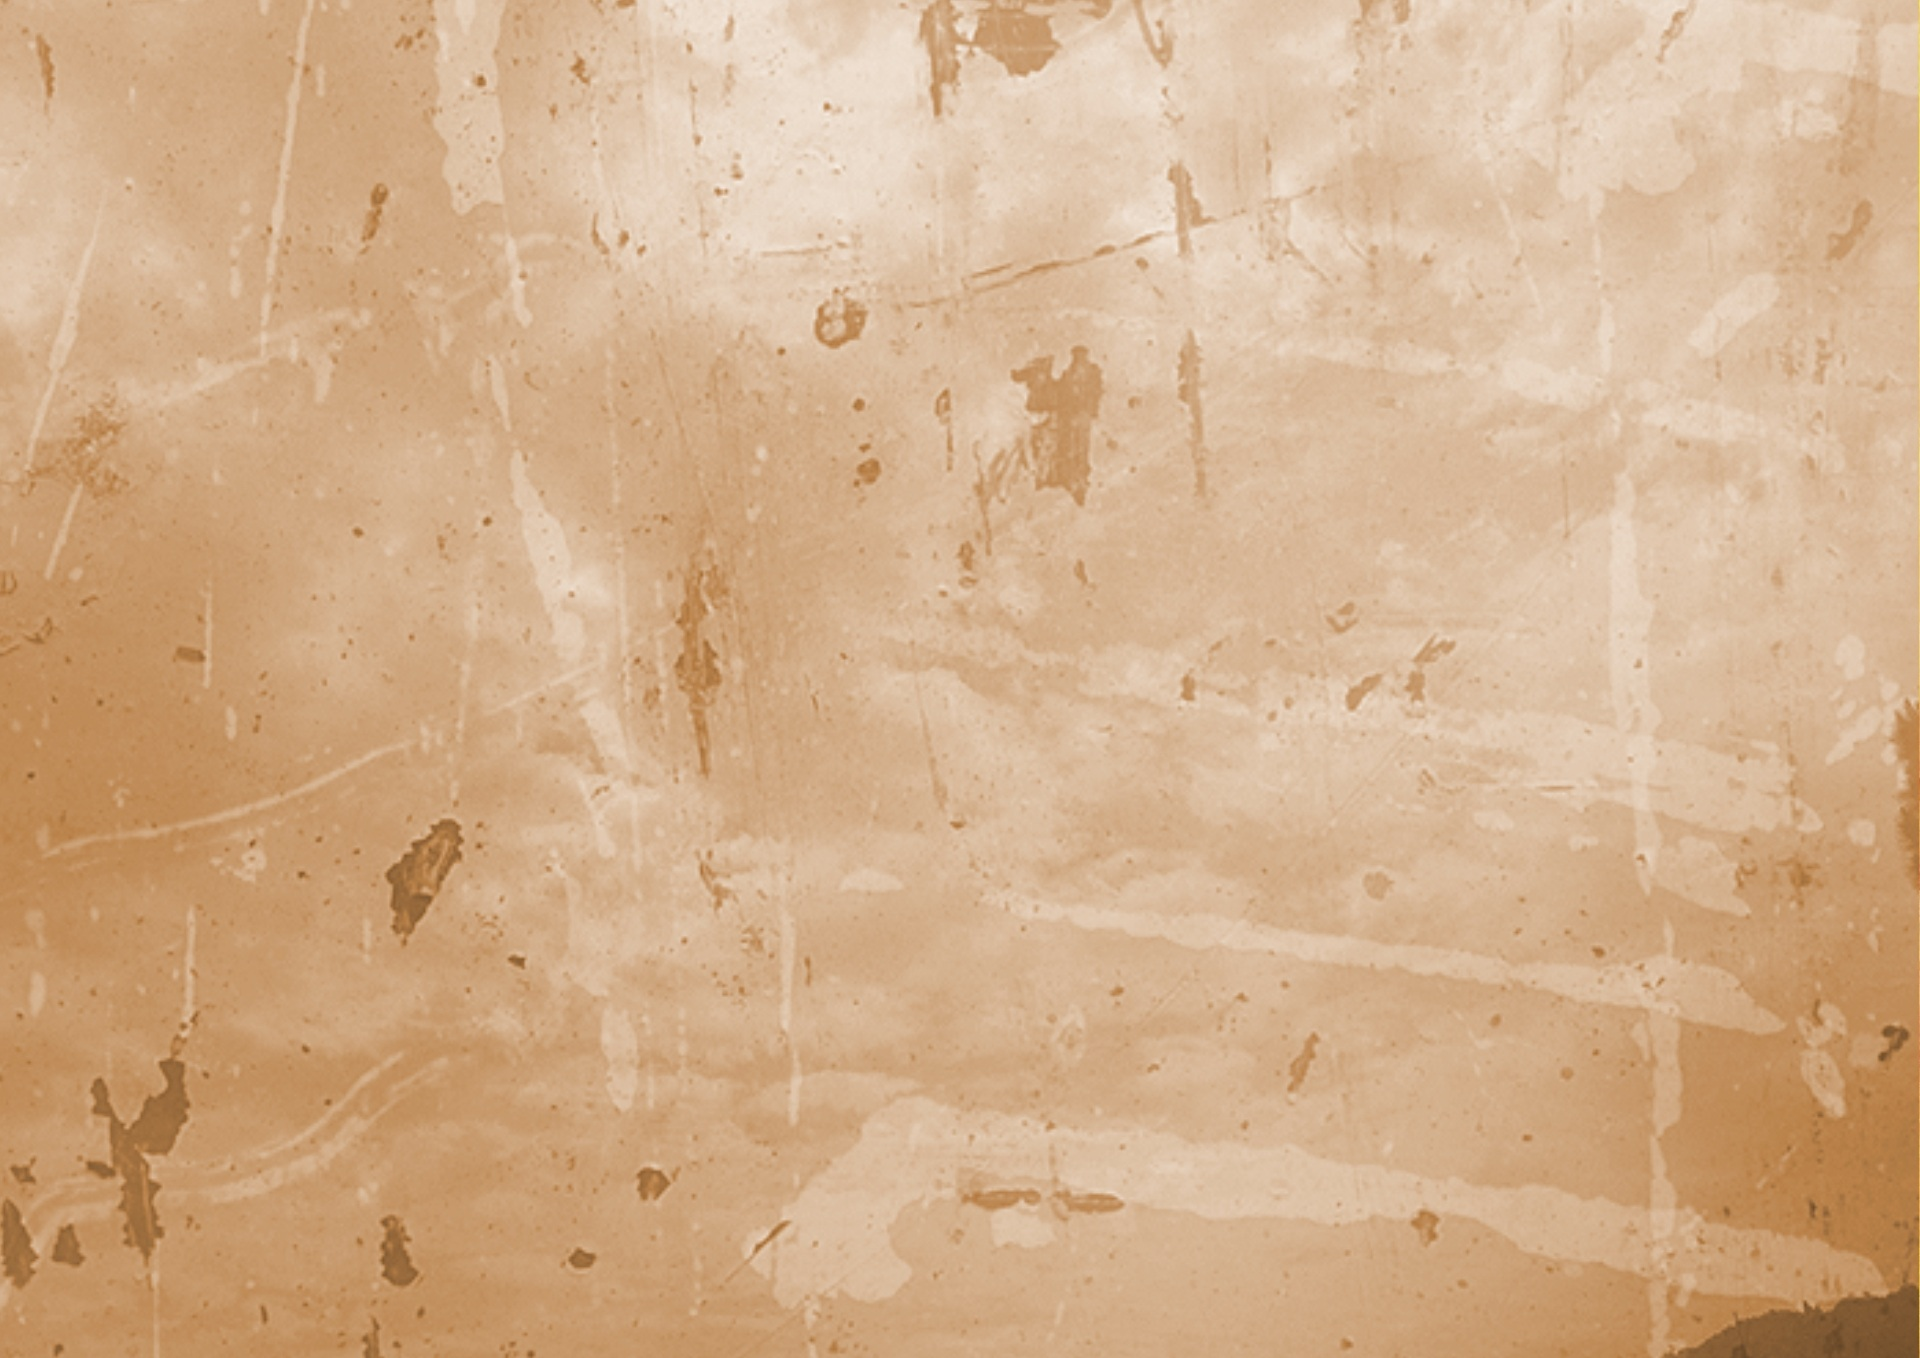 Vintage Texture, Design, Faded, Old, Texture, HQ Photo